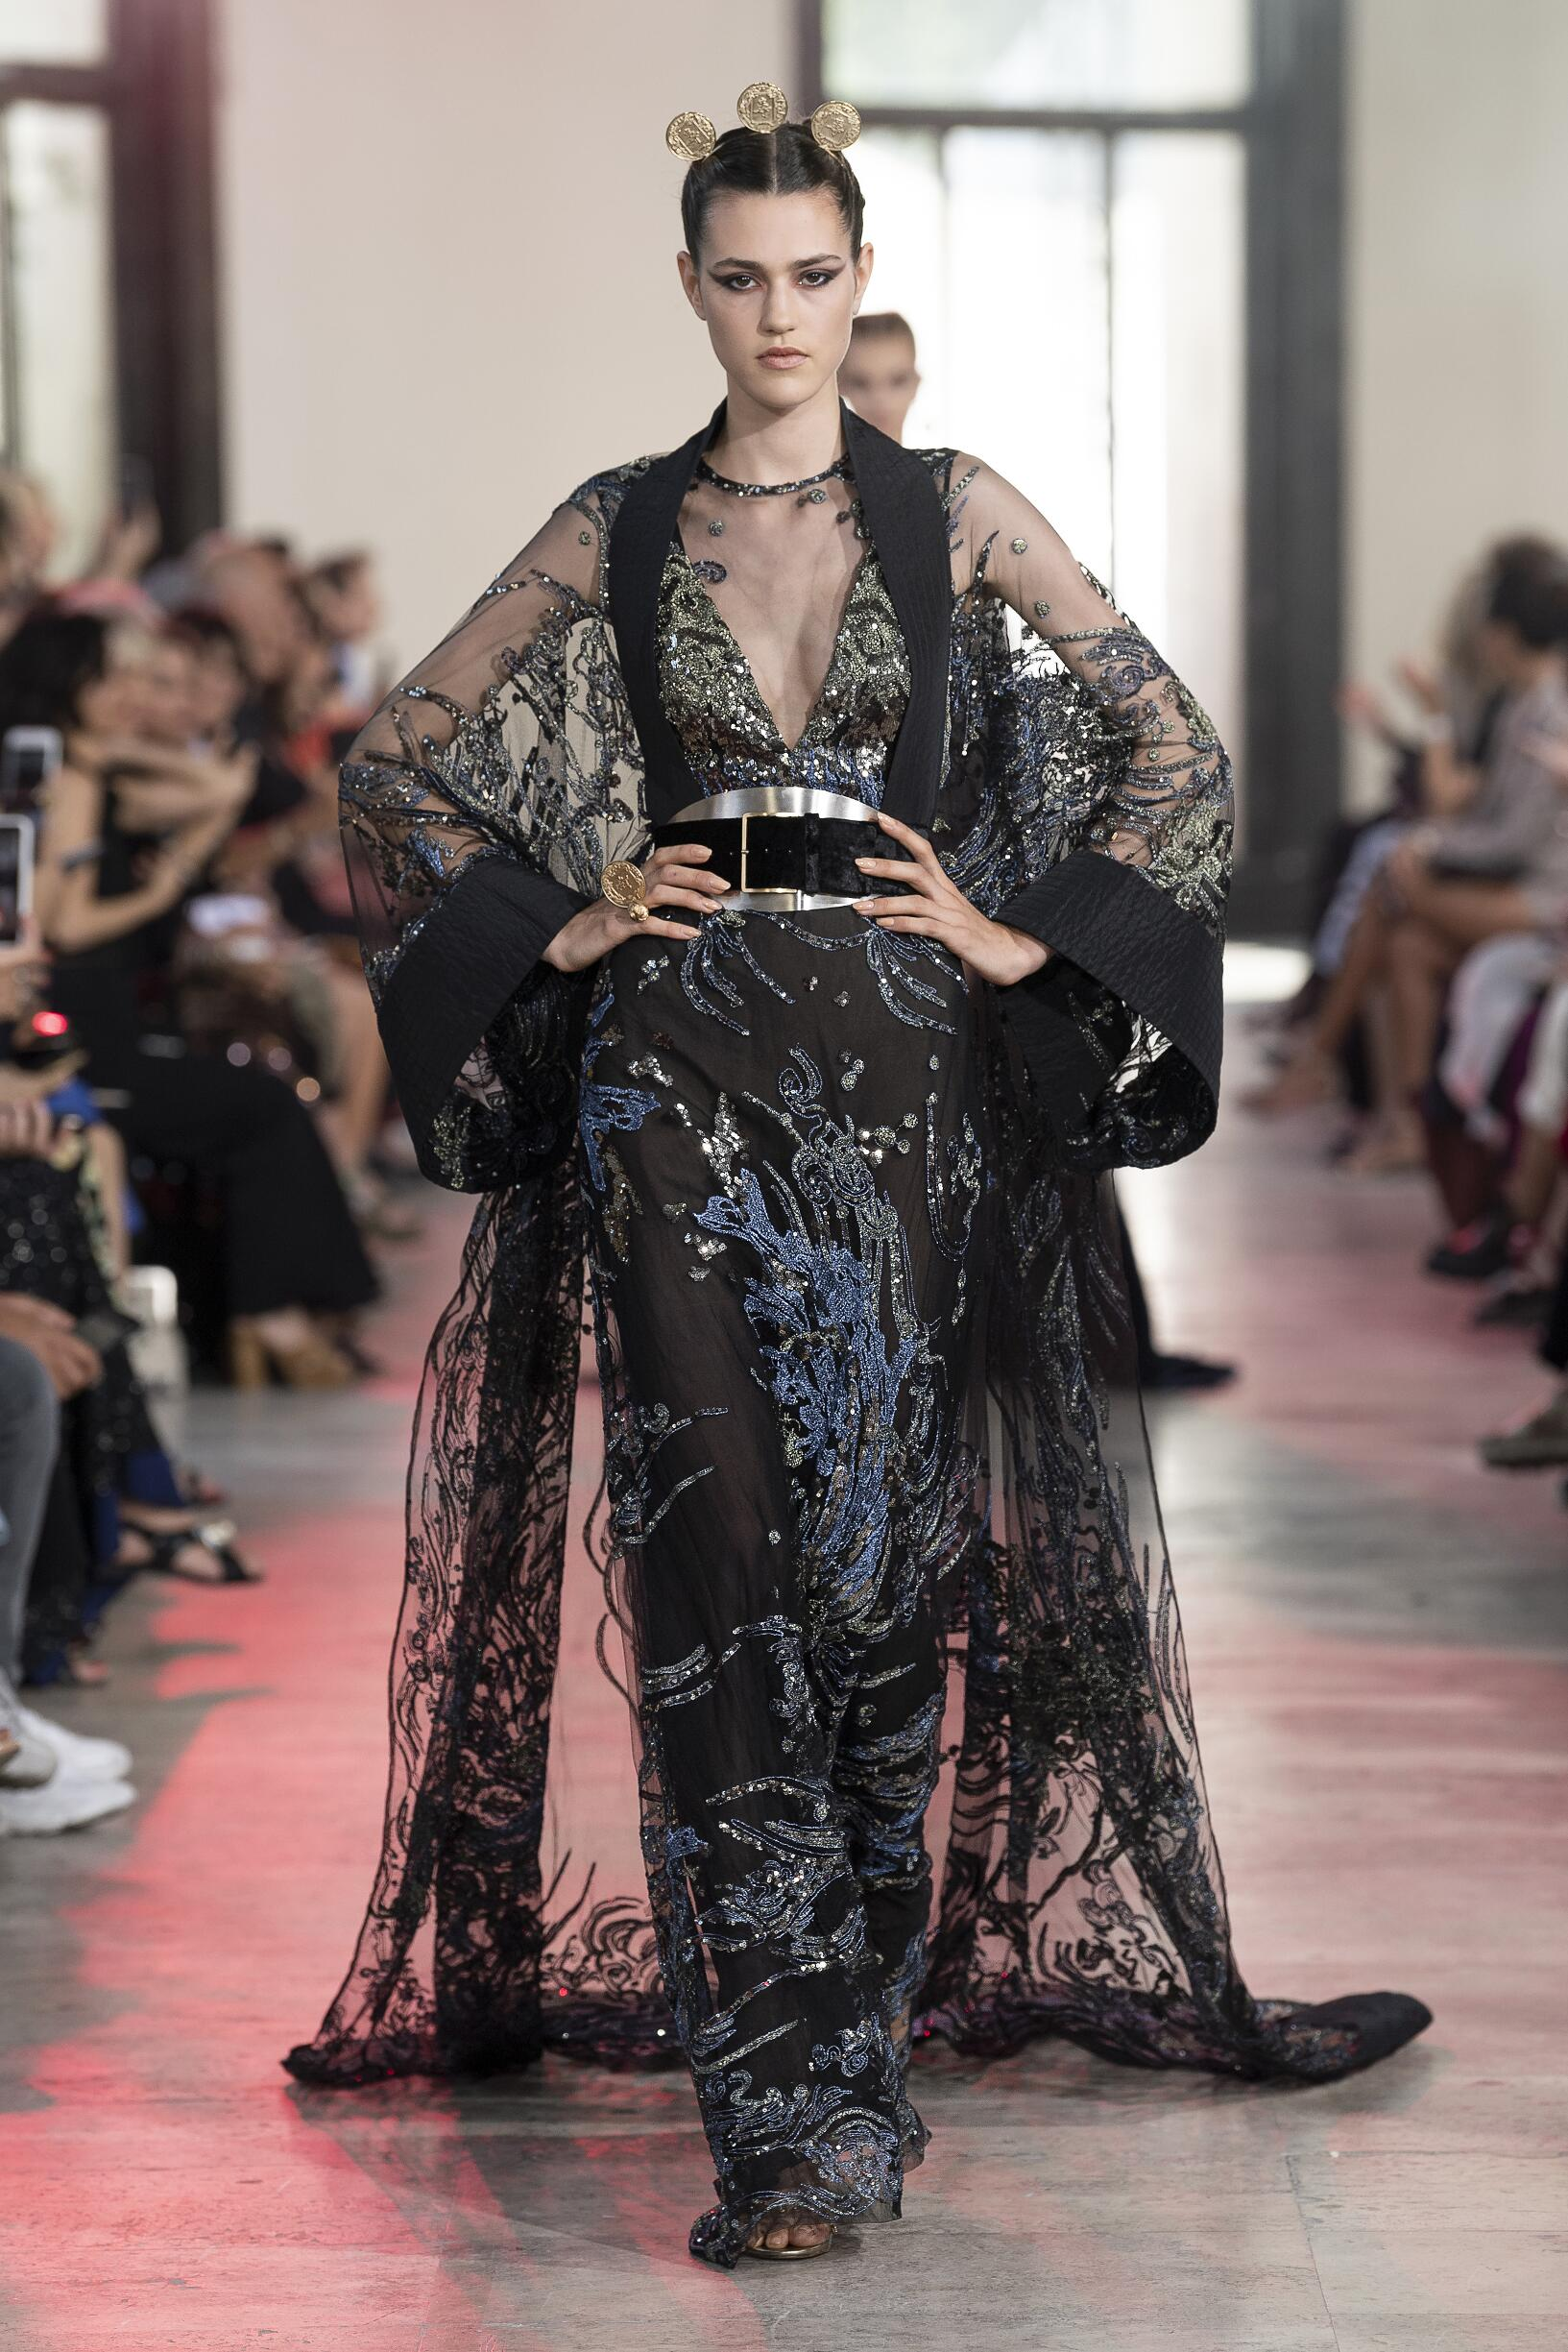 Woman FW 2019 Elie Saab Haute Couture